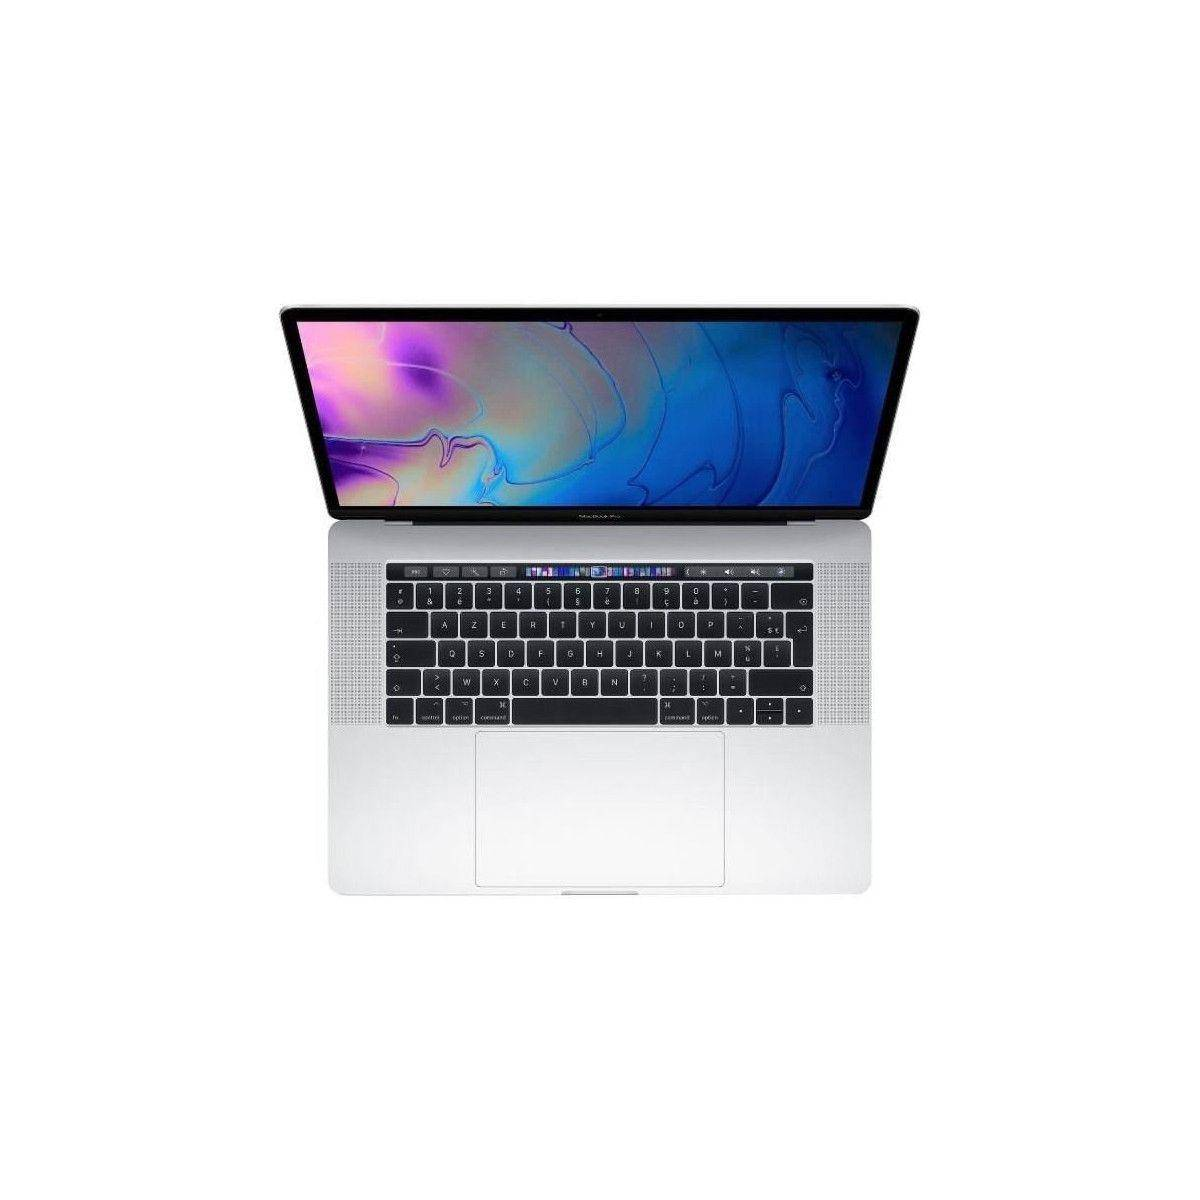 APPLE MacBook Pro MR972FN/A - 15,4 pouces Retina avec Touch Bar - Intel Core i7 - RAM 16Go - Stockage 512Go - Argent